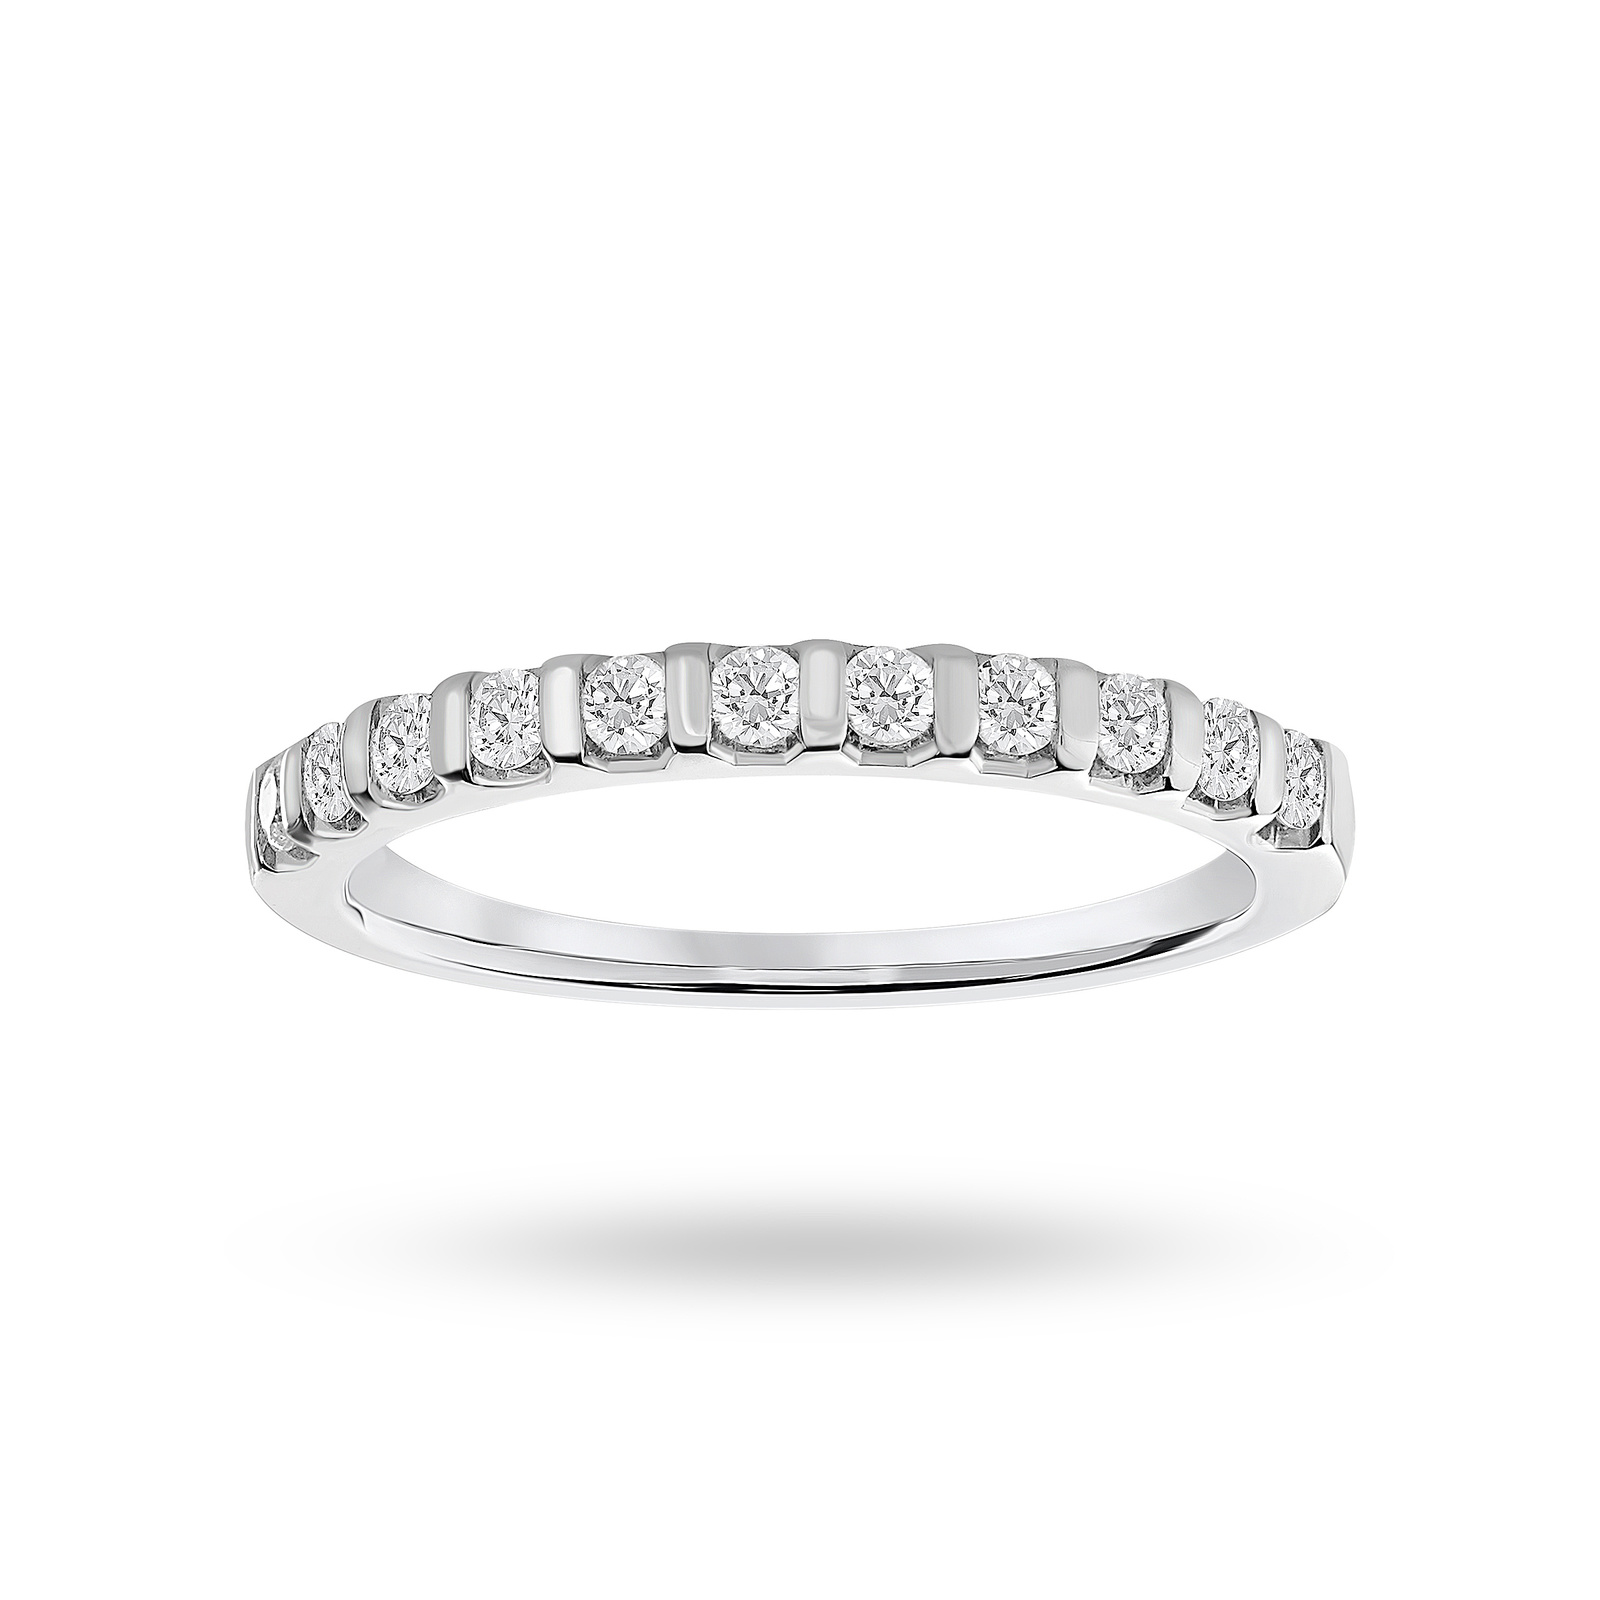 18 Carat White Gold 0.30 Carat Brilliant Cut Bar Half Eternity Ring